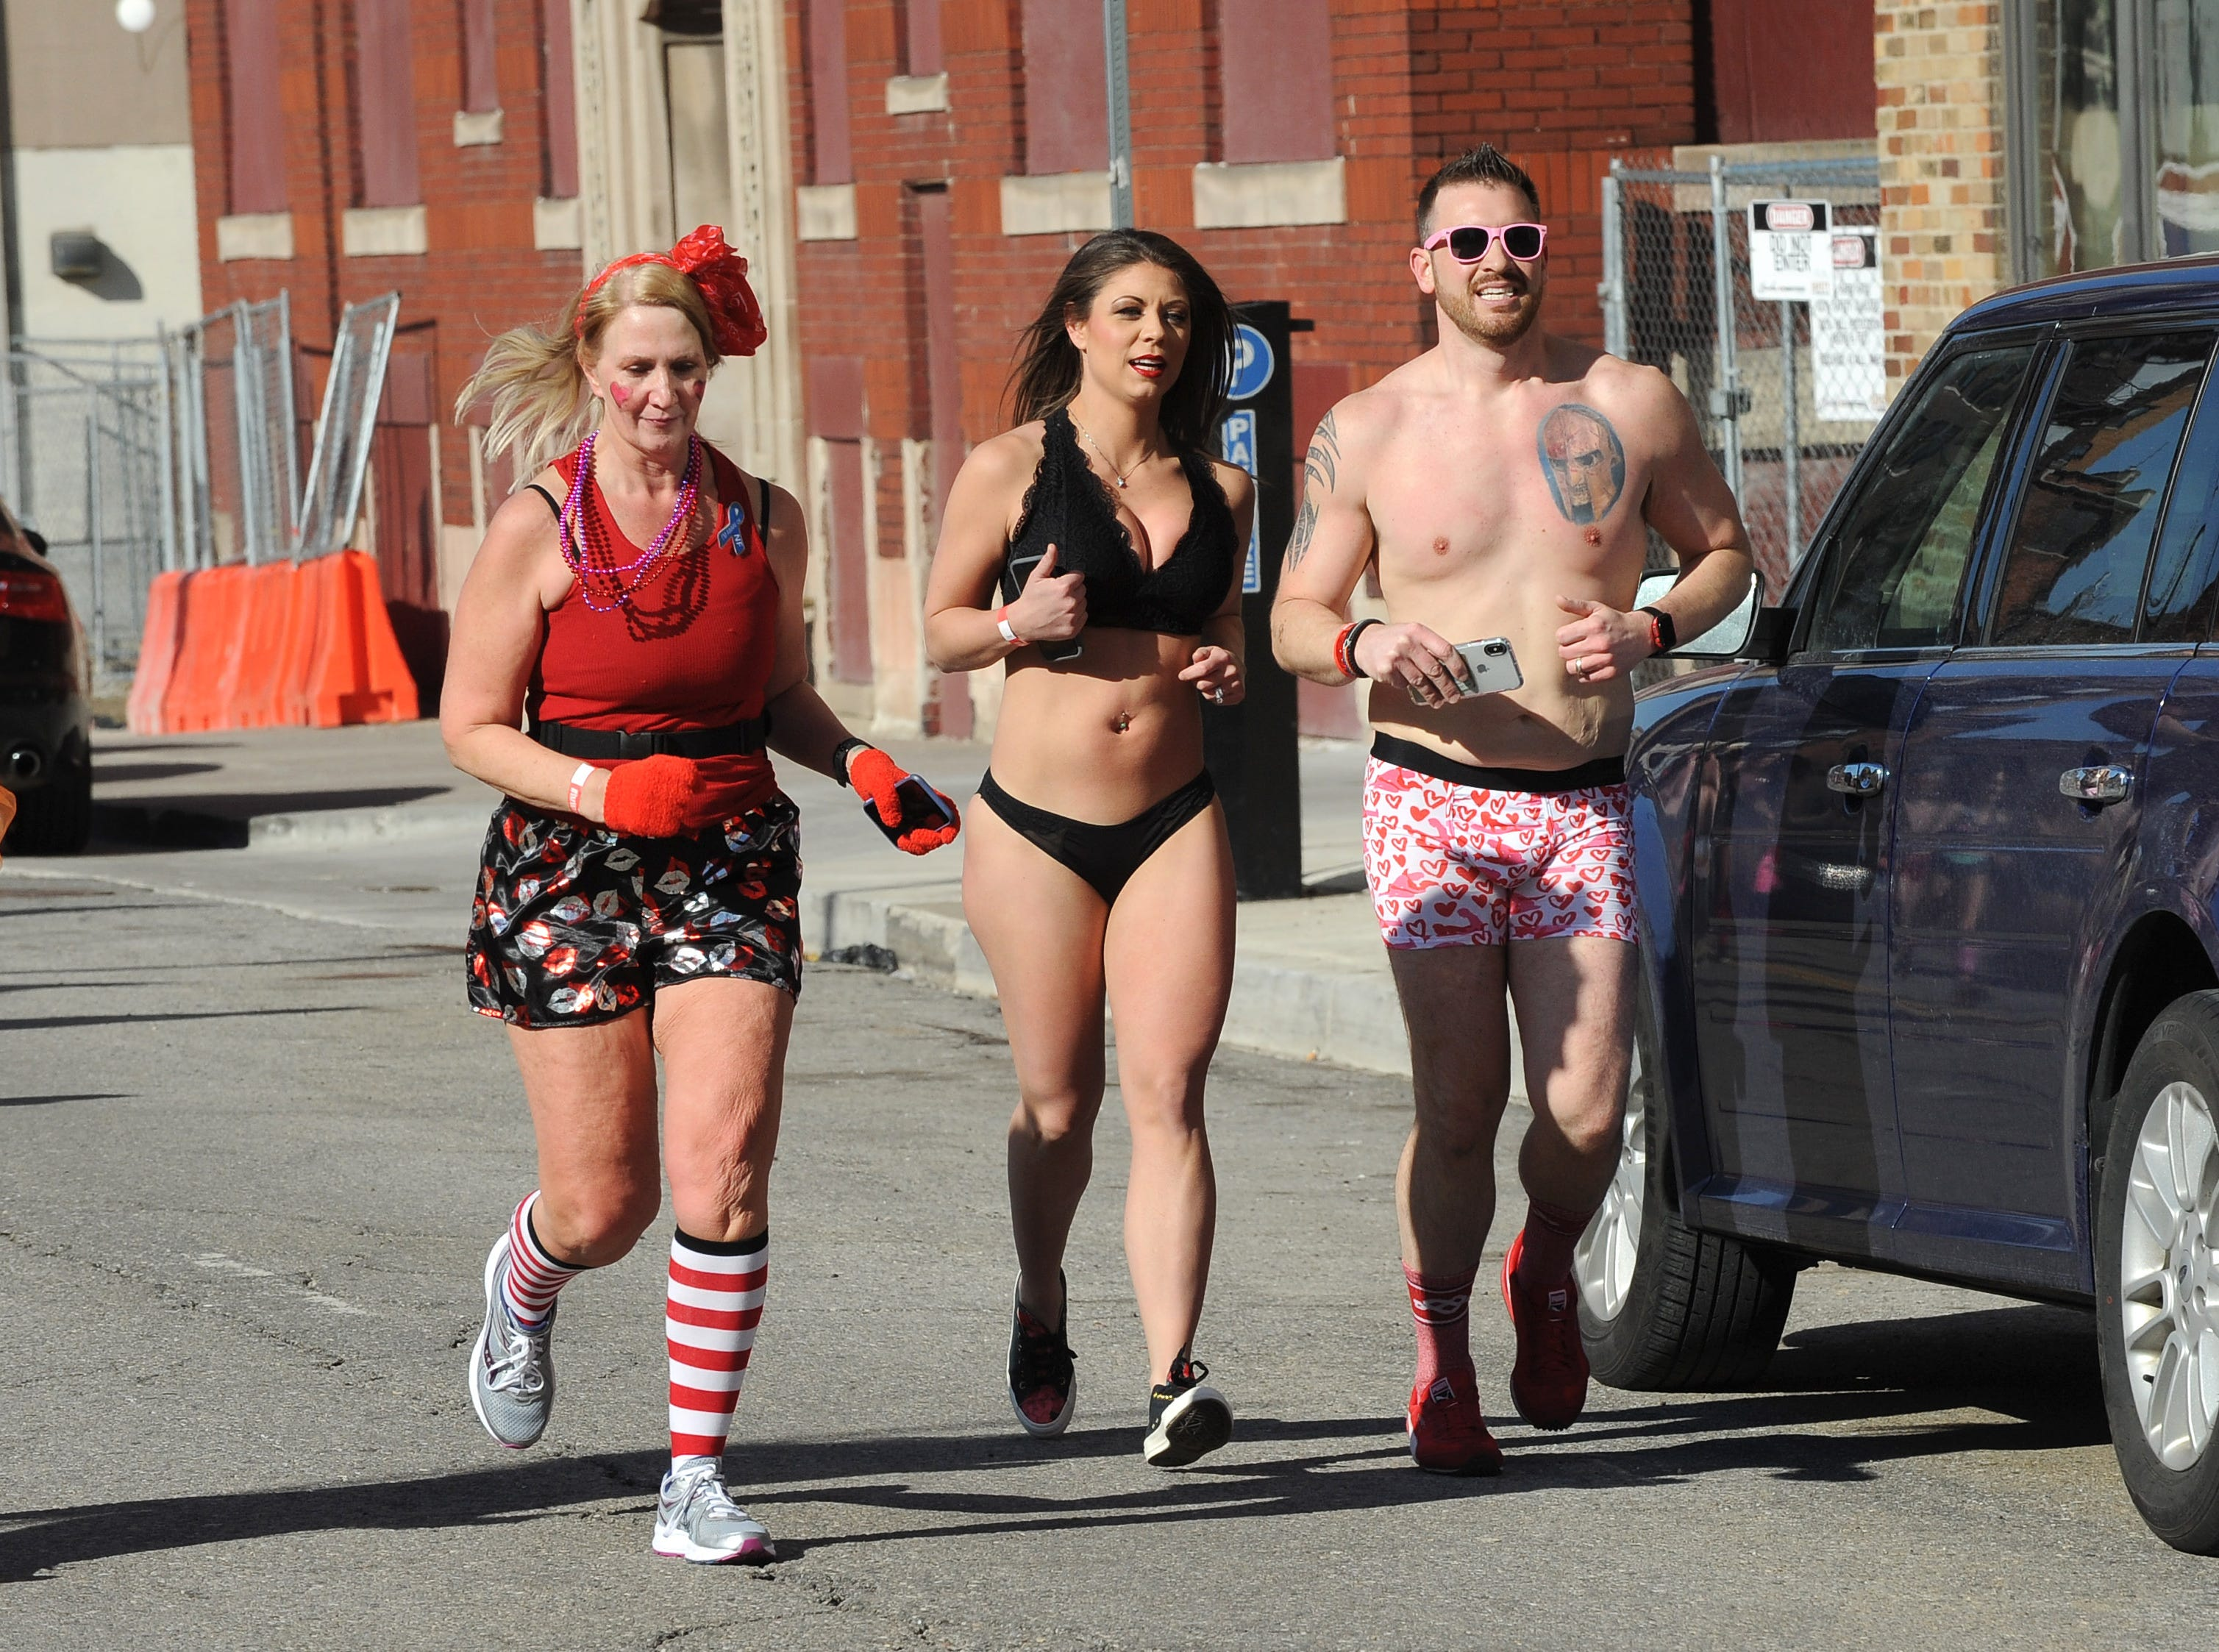 Participants tossed their winter coats and gloves as they hit the streets of Detroit for Cupid's Undie Run.